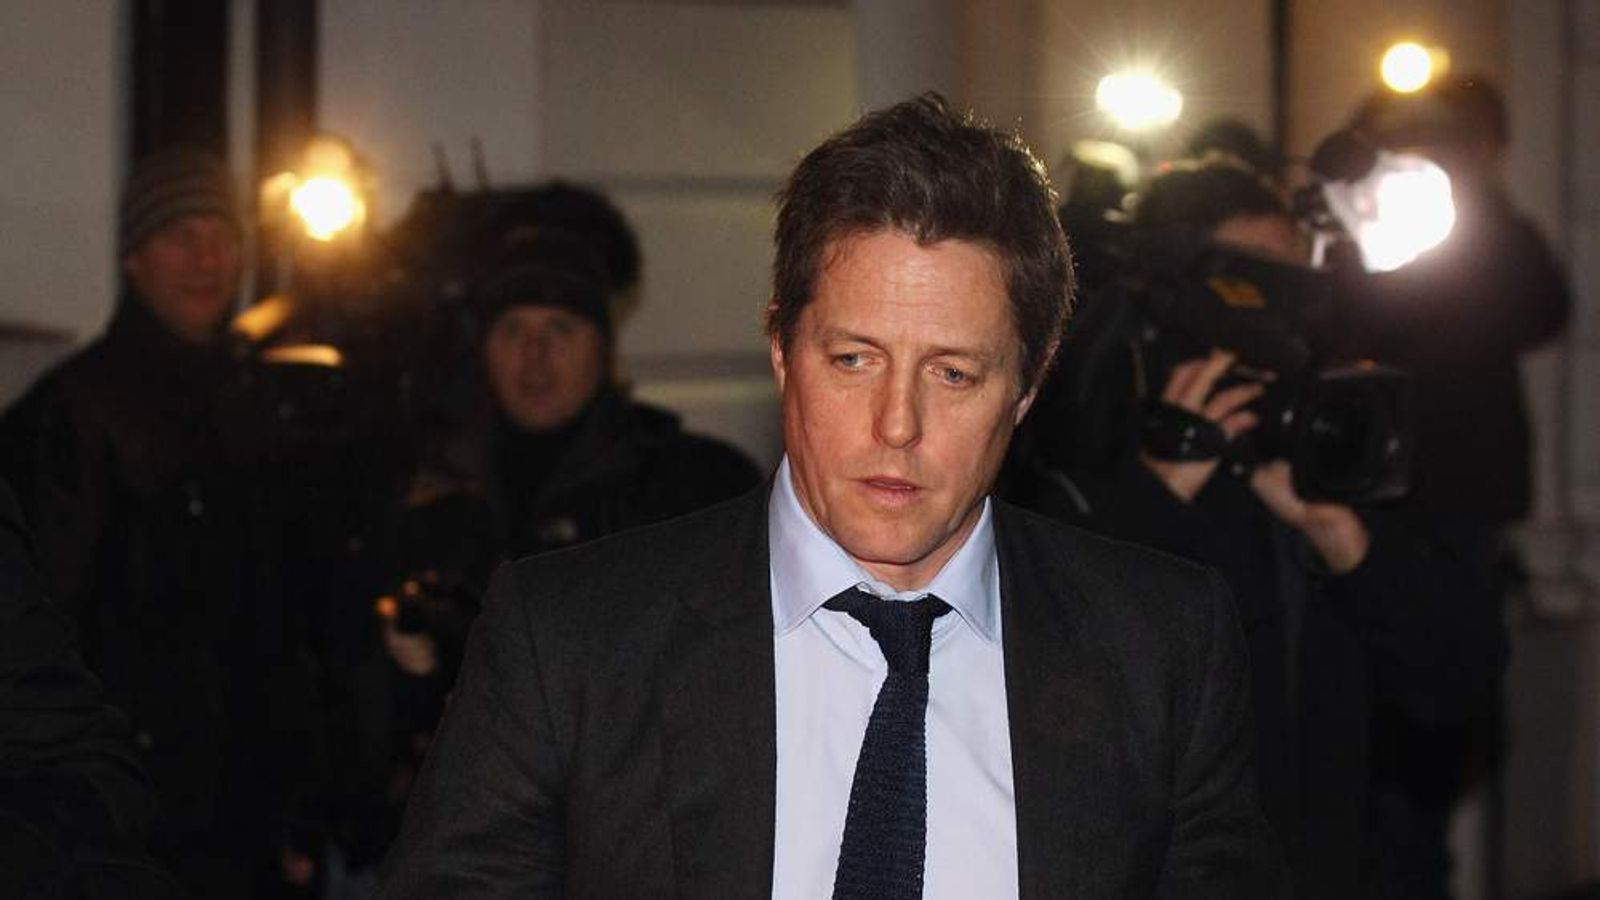 Hugh Grant gave evidence to the Leveson Inquiry in November.